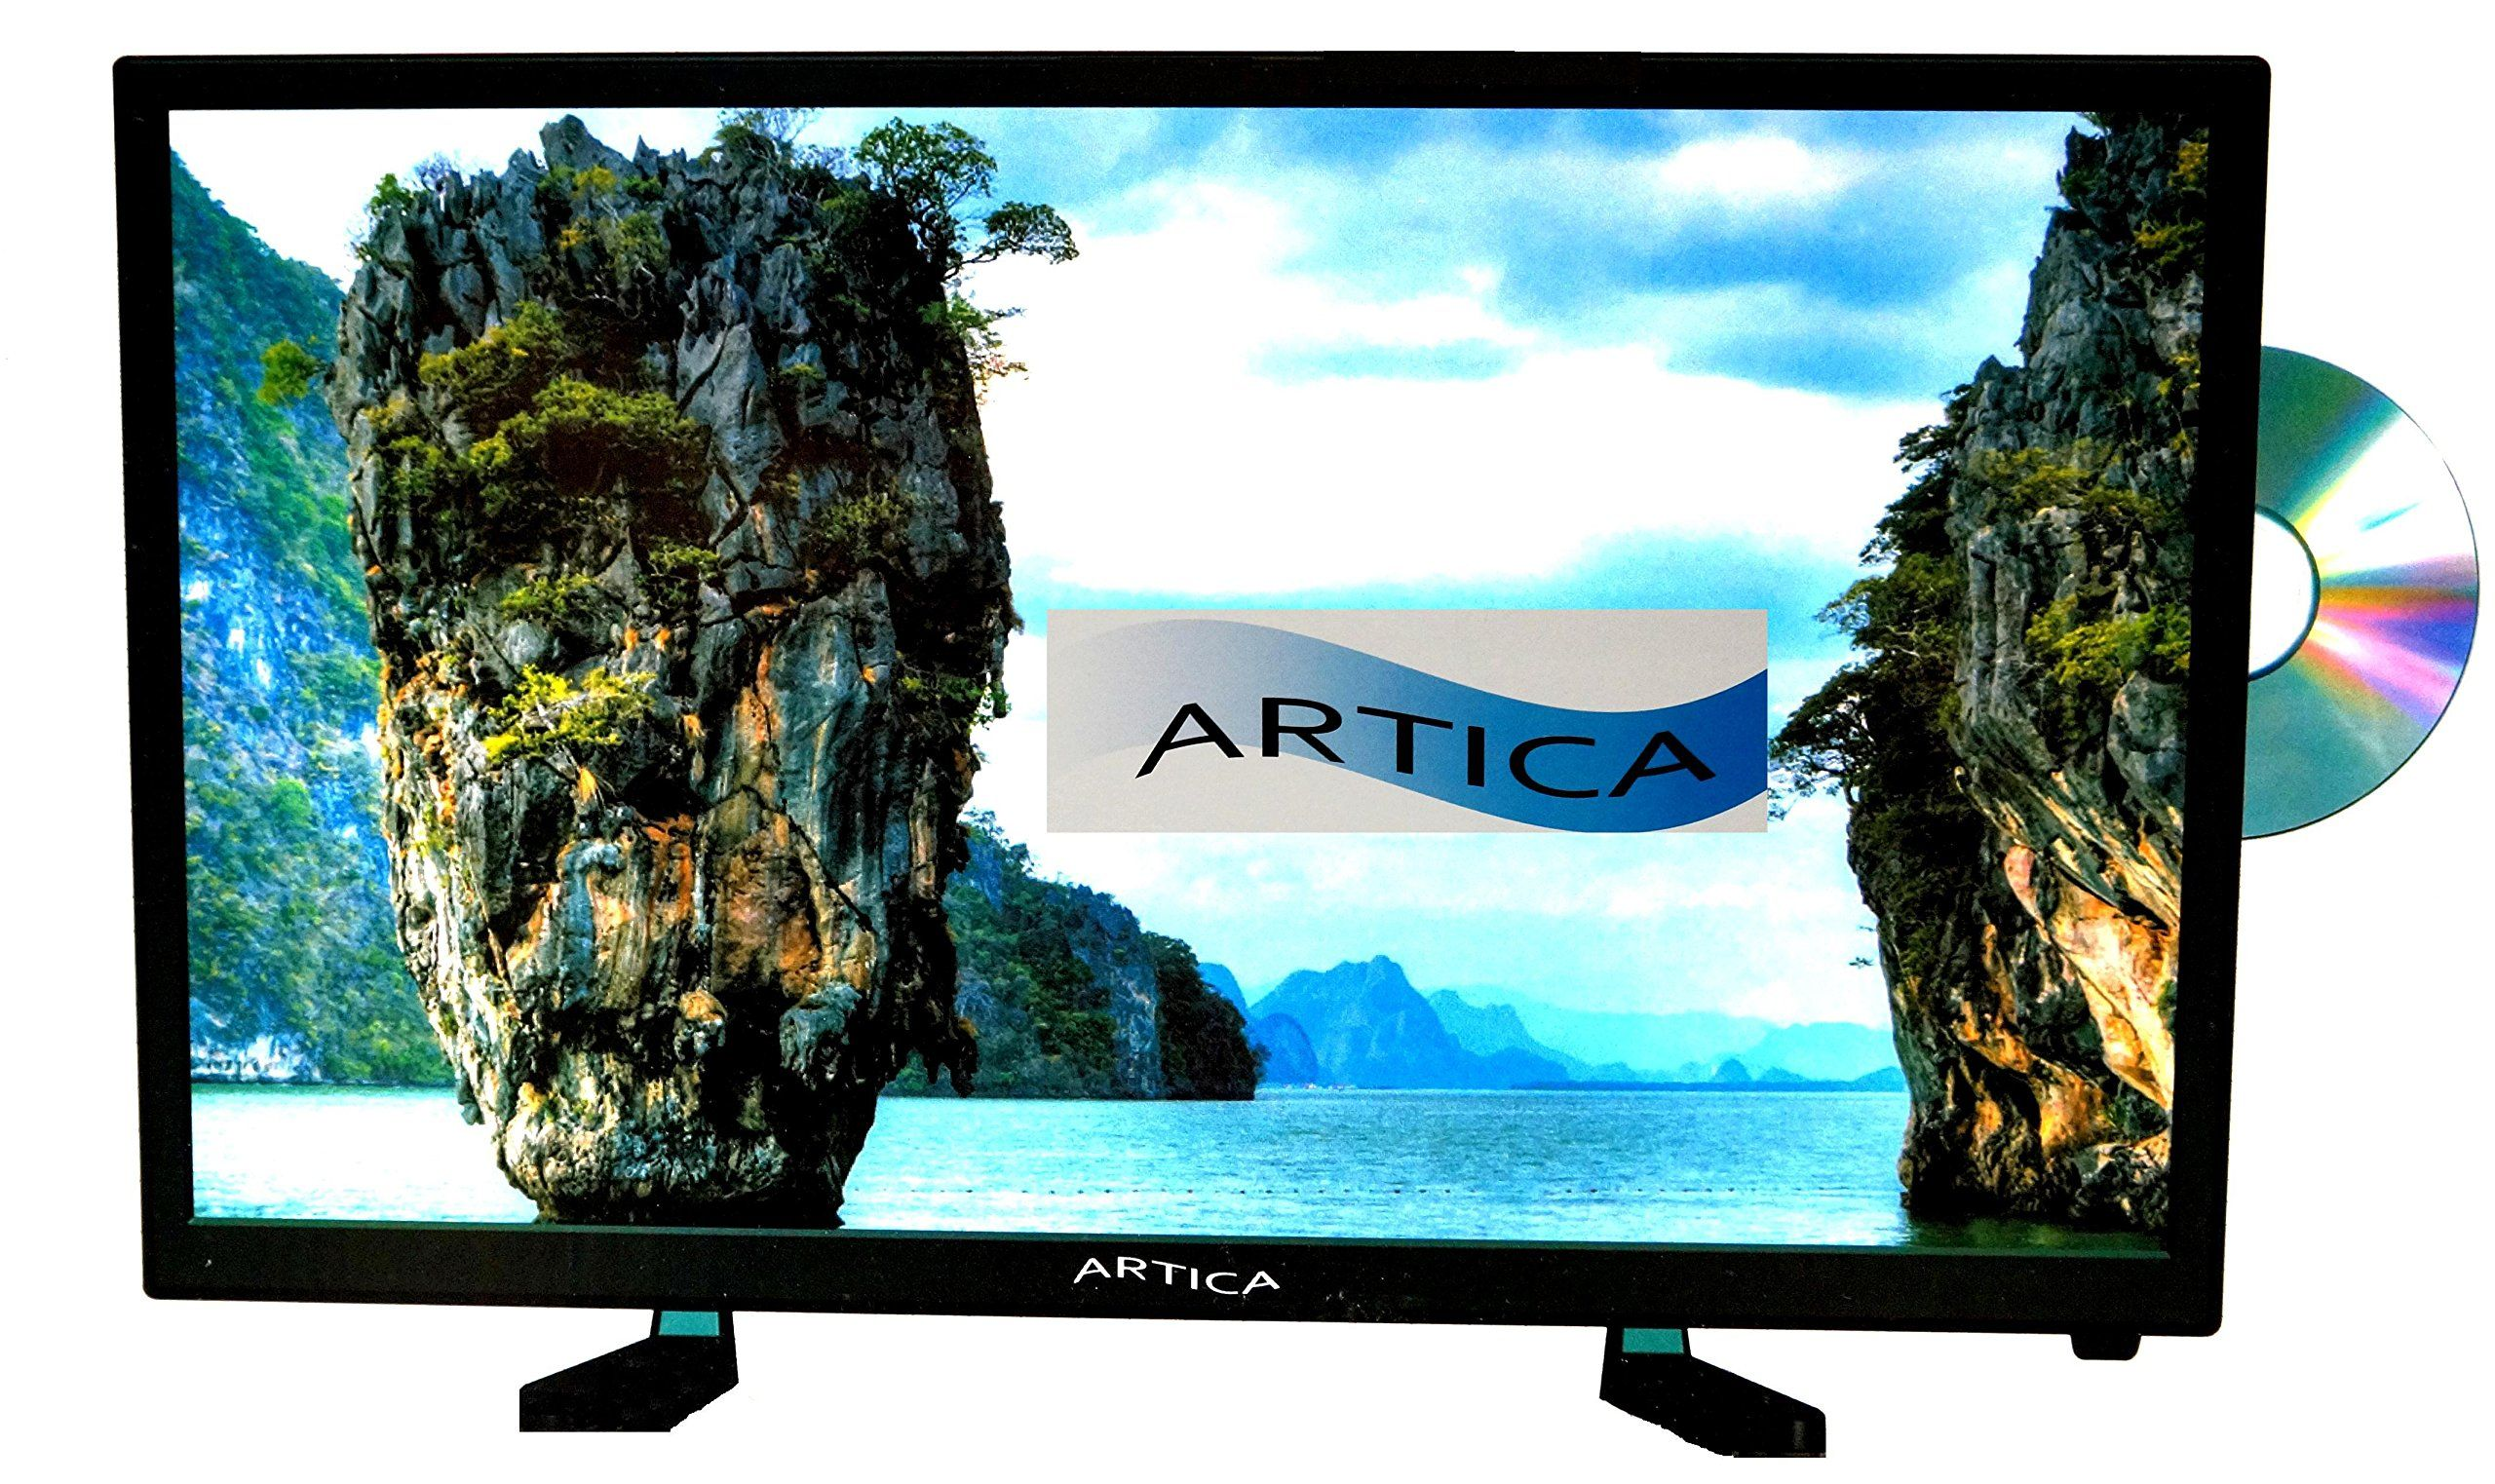 Artica Ar2418 24 Inch Hd Led Tv With Dvd Combo Black Led Tv Tv Dvd Player